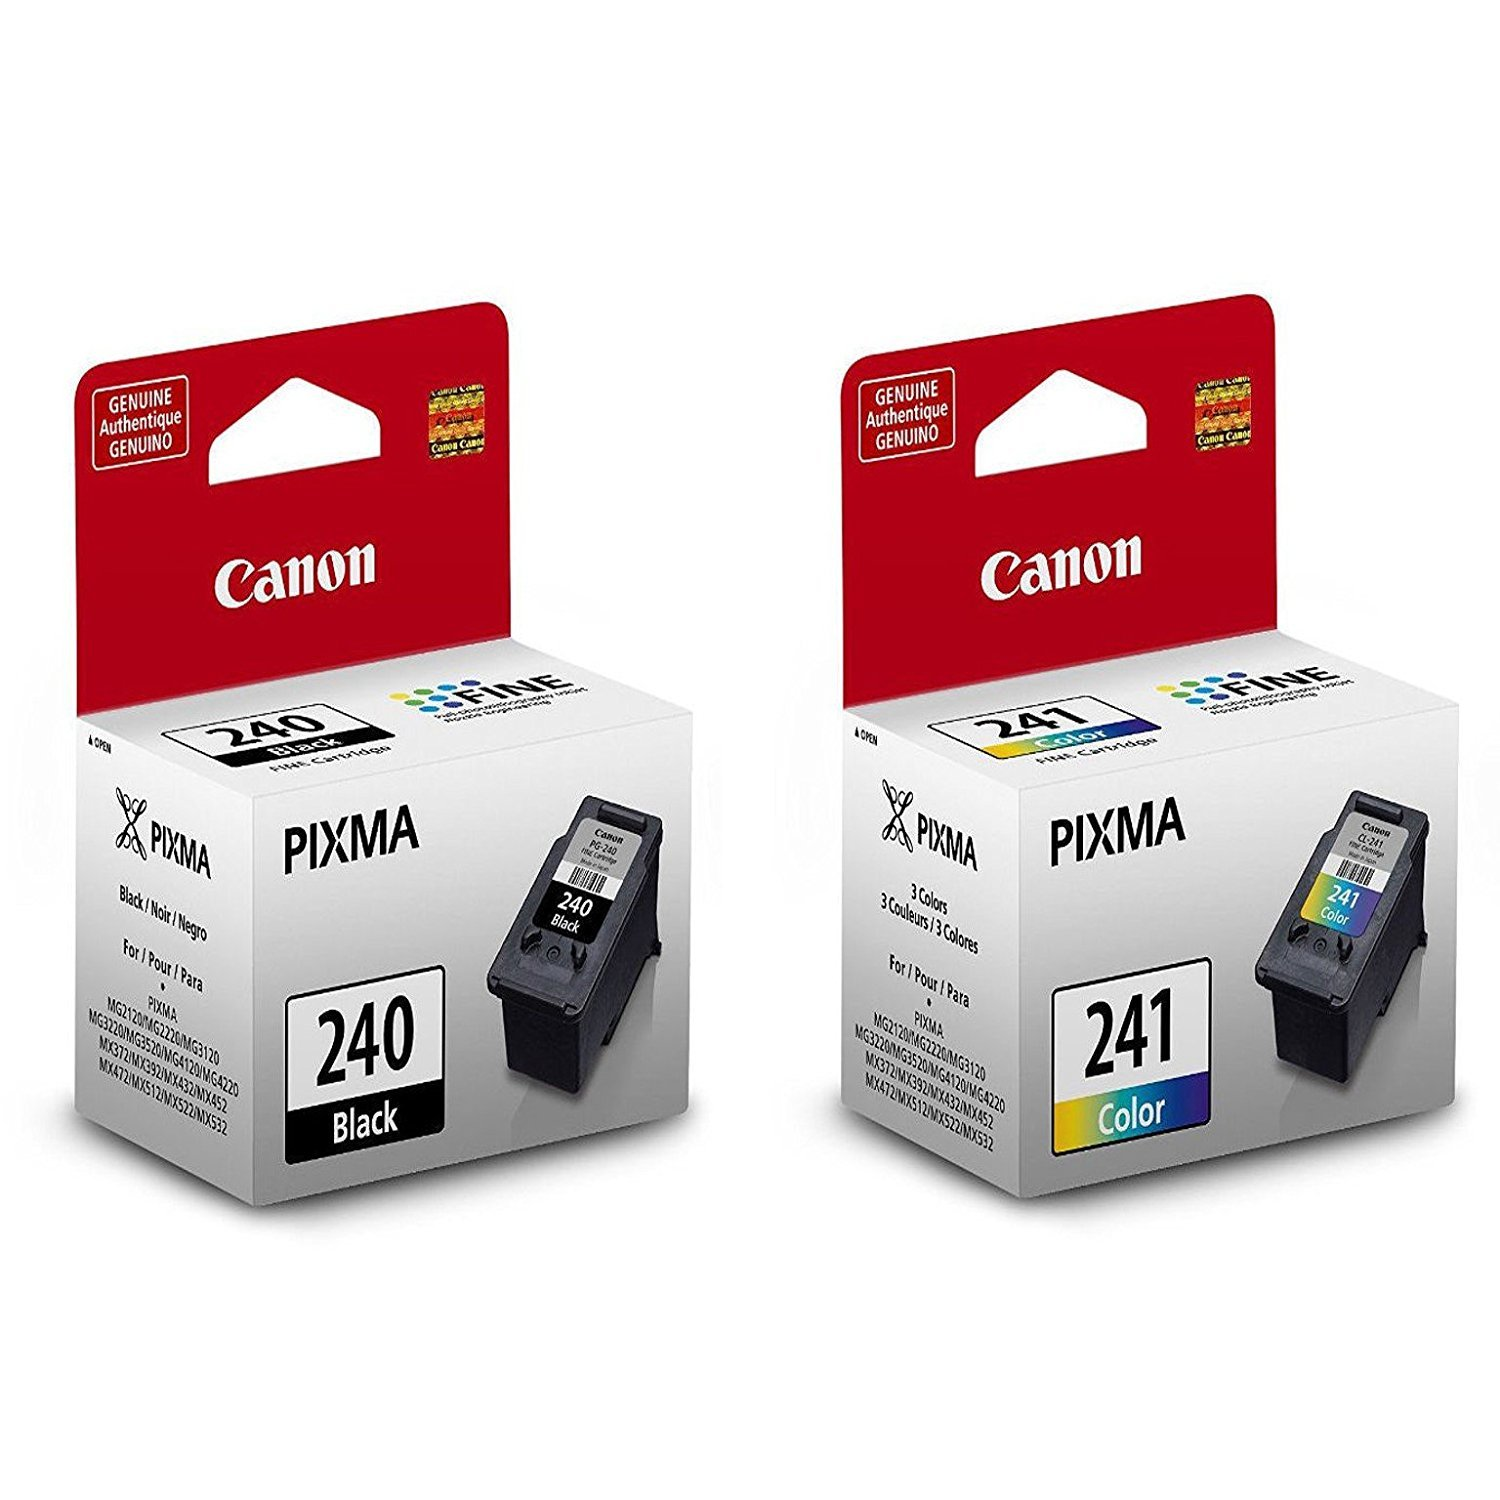 Kit de cartuchos de tinta fina de color negro  Canon PG-240 y CL-241.